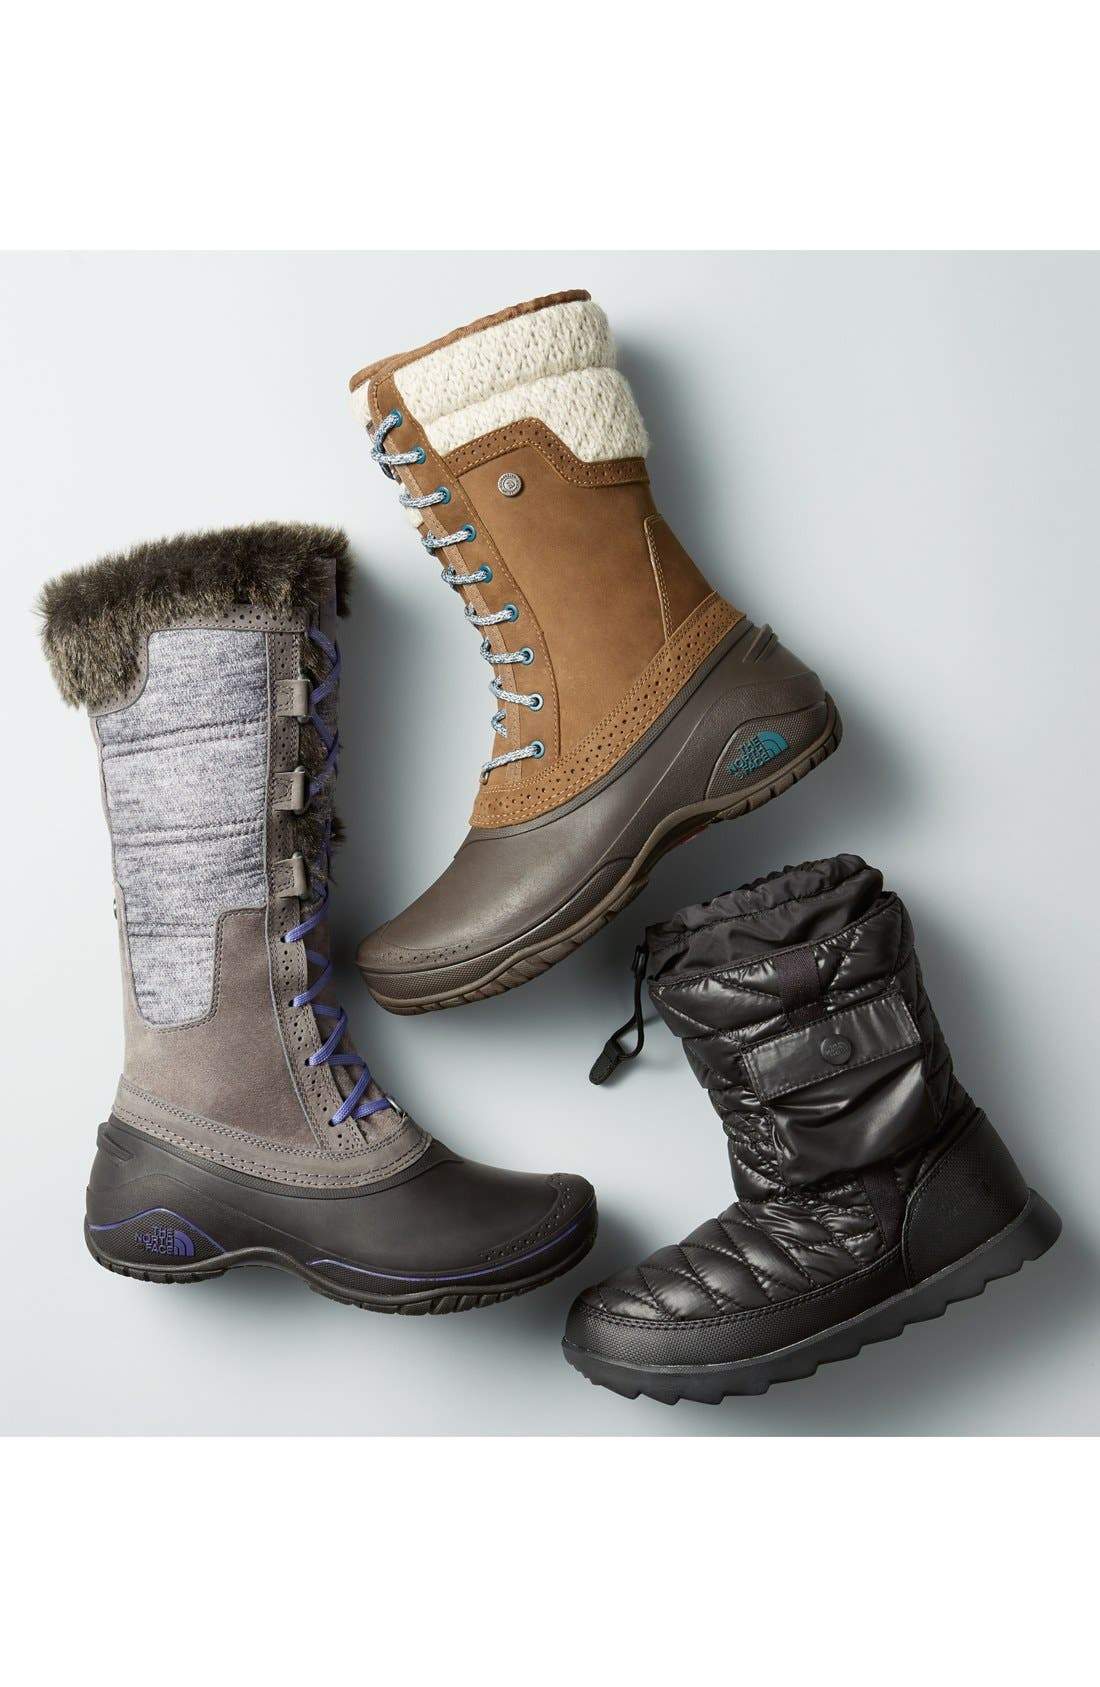 THE NORTH FACE, Shellista Waterproof Insulated Snow Boot, Alternate thumbnail 7, color, GRISAILLE GREY/ VINTAGE WHITE